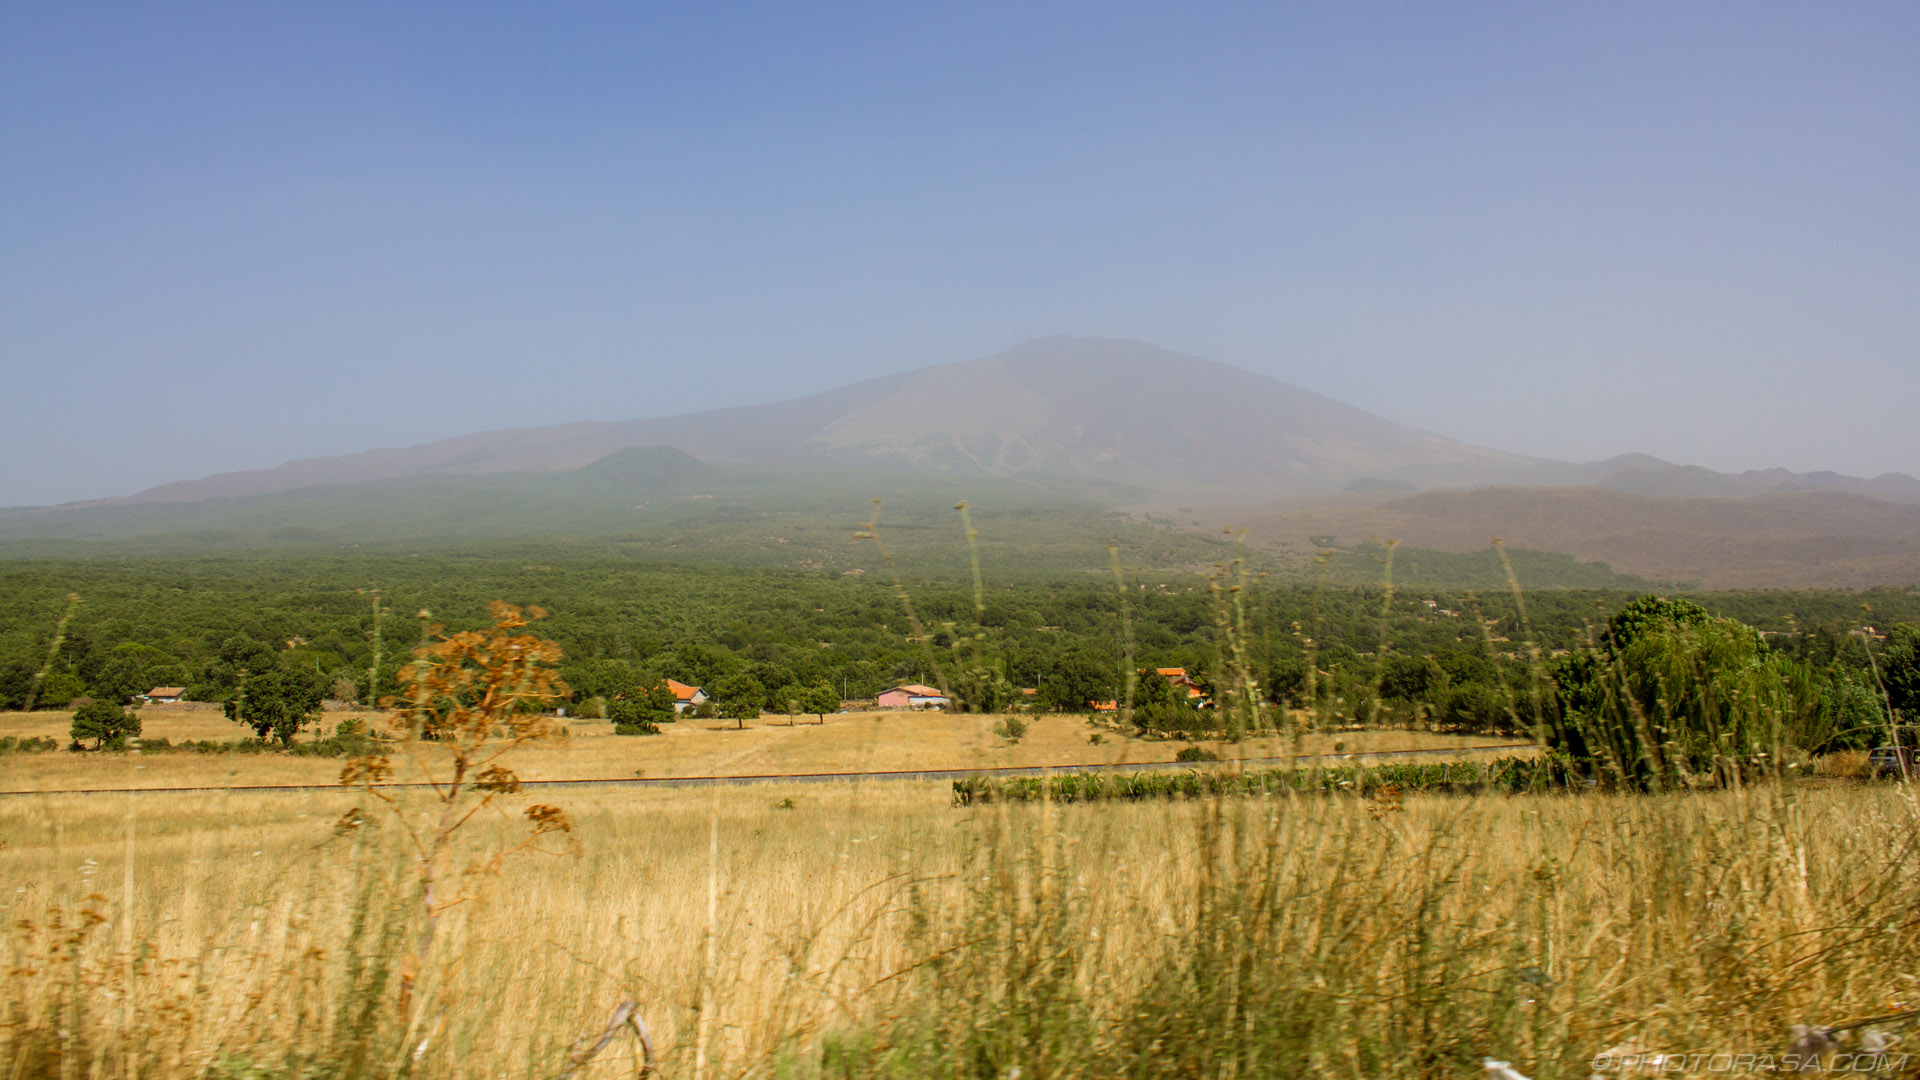 http://photorasa.com/mount-etna/etna-in-the-distance/